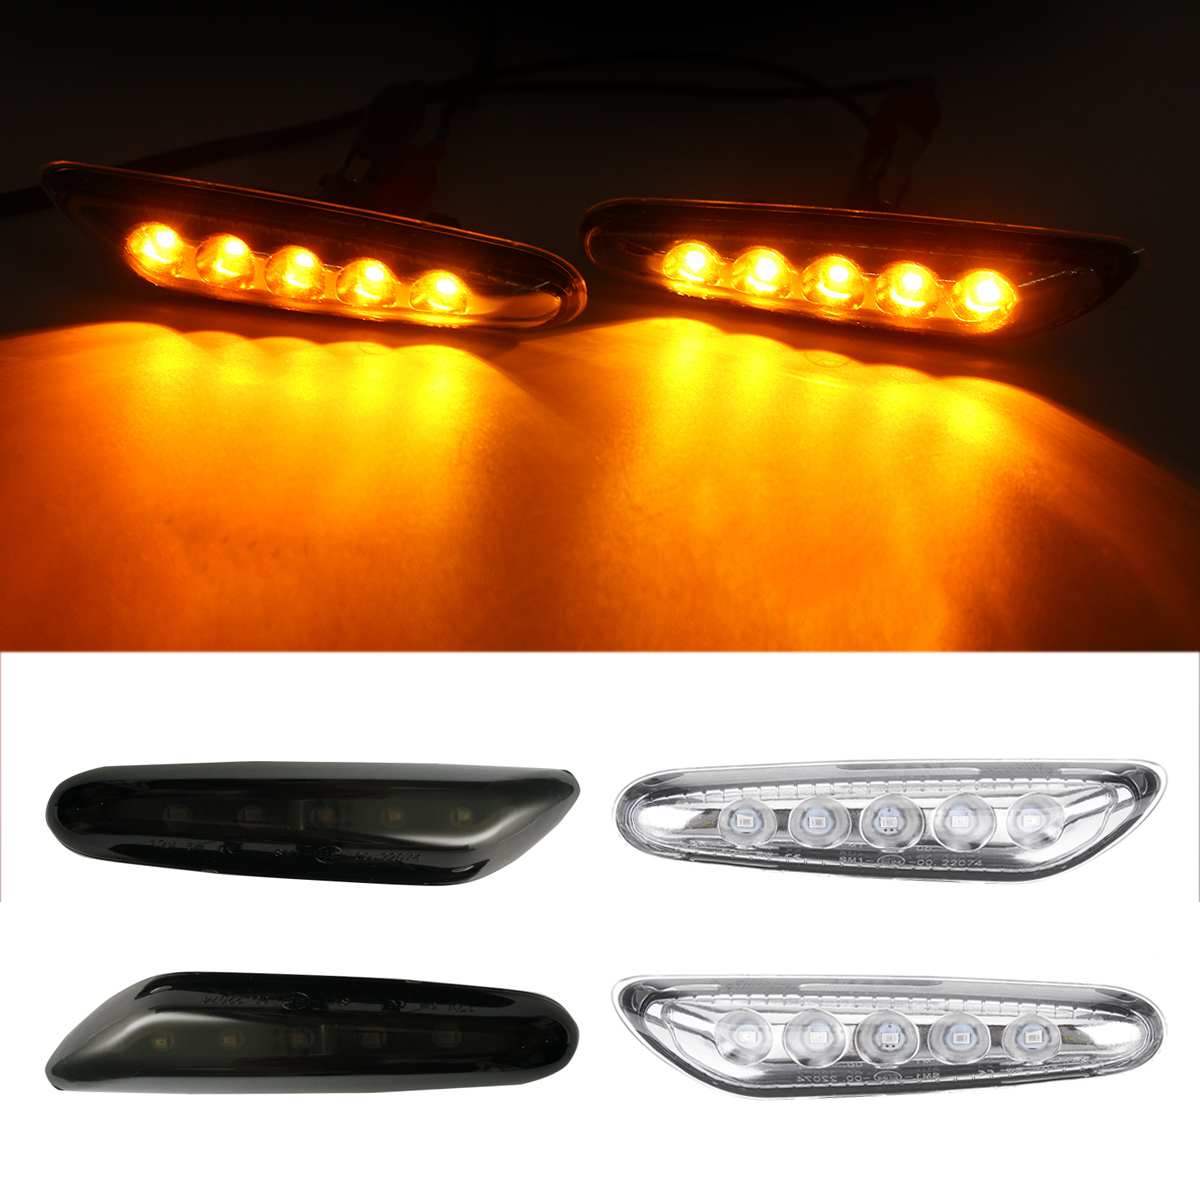 2x LED Side Marker Turn Signal Light Turn Indicator Blinker Lamp Signal Lamp for BMW E90 E91 E92 E46 E81 E82 E83 X3 E84 X1 image